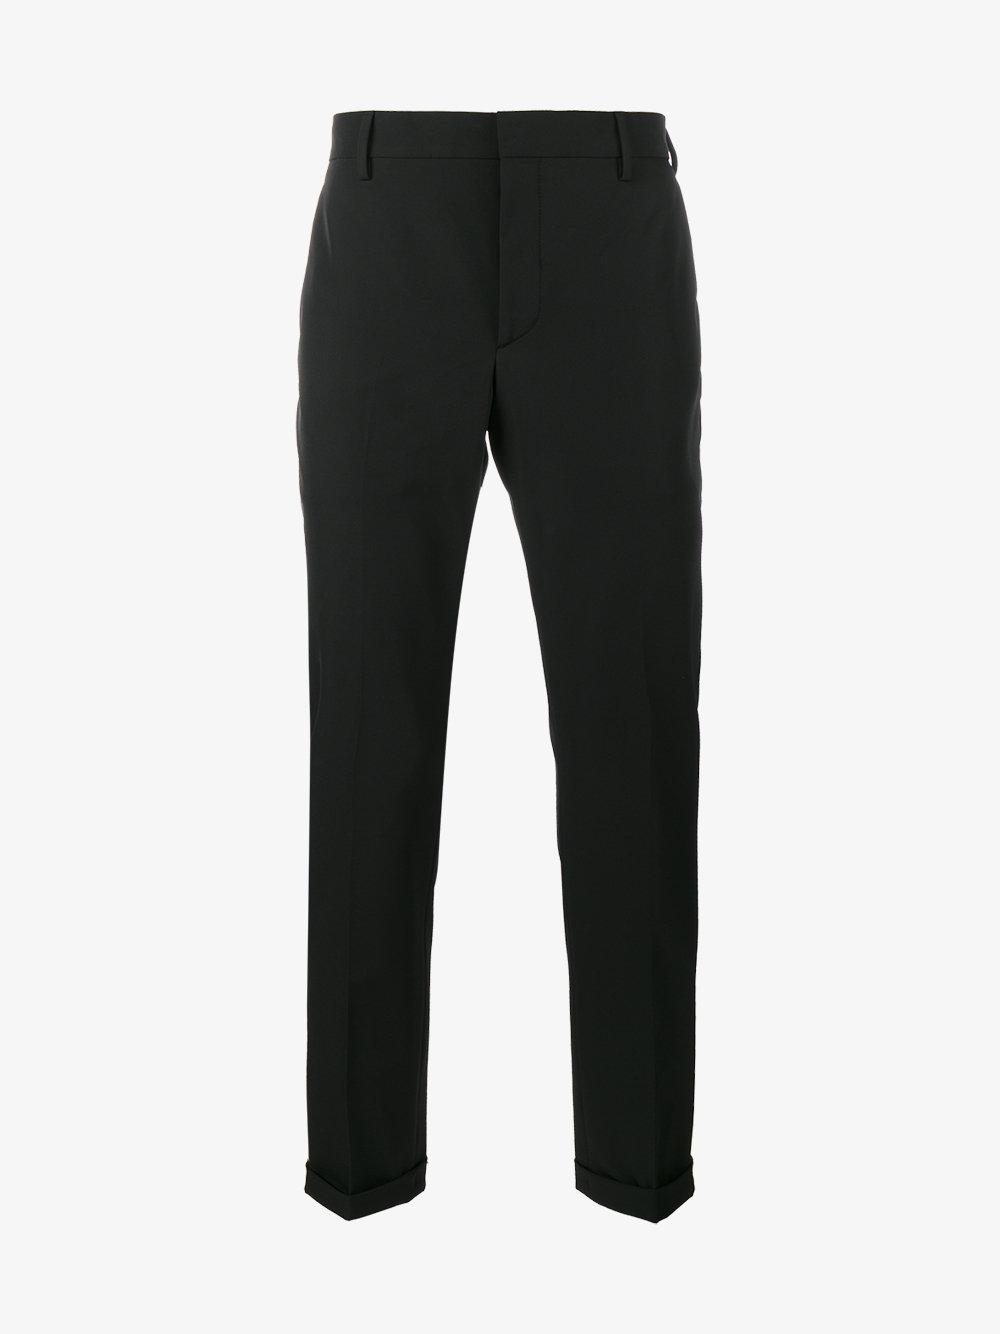 Prada Cotton Turn-up Tailored Trousers in Black for Men